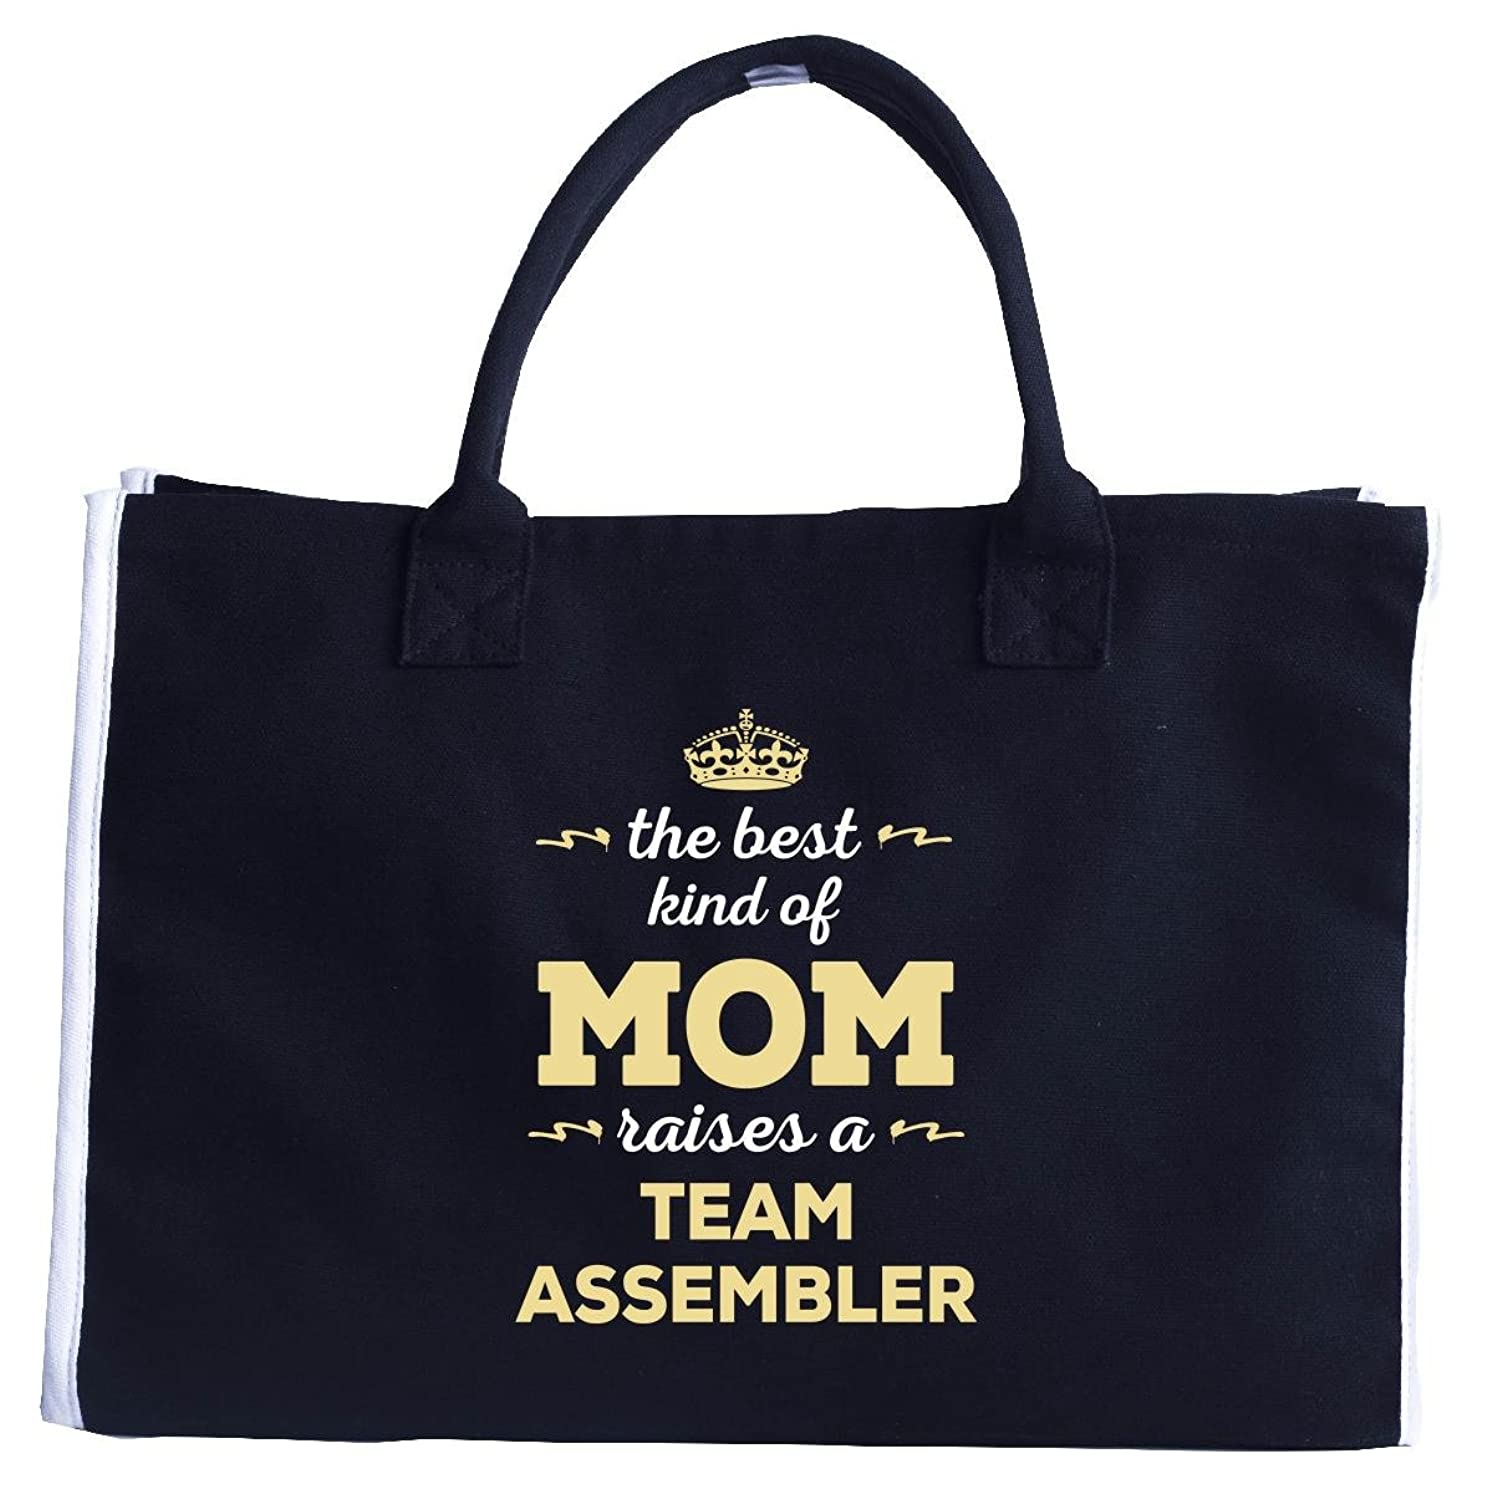 The Best Kind Of Mom Raises A Team Assembler. Gift For Mom - Fashion Tote Bag